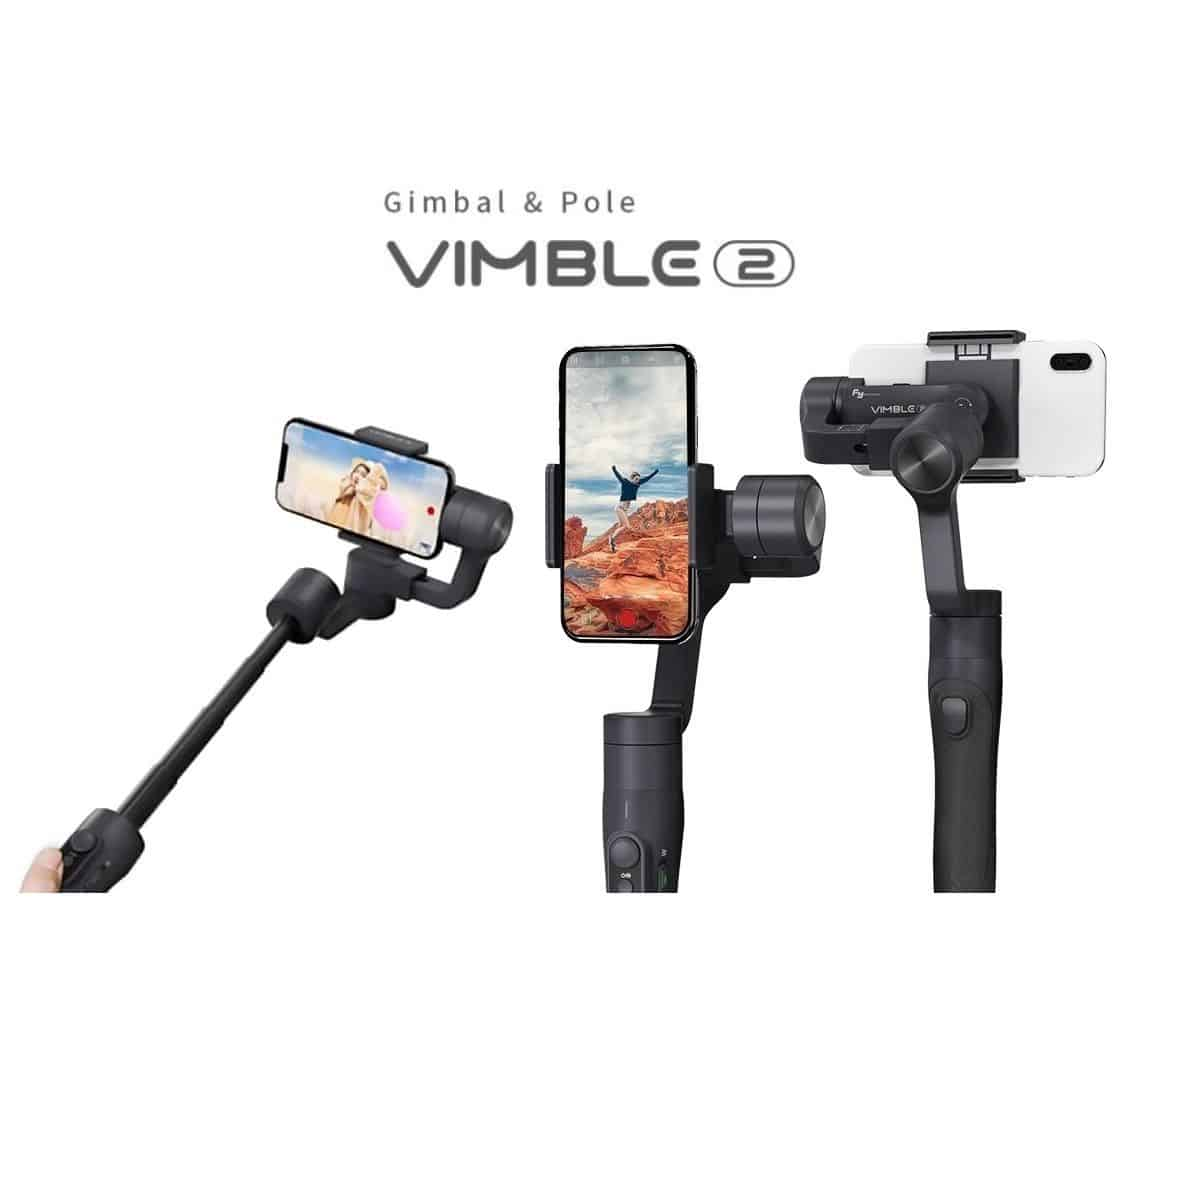 amazon Feiyu Vimble 2 reviews Feiyu Vimble 2 on amazon newest Feiyu Vimble 2 prices of Feiyu Vimble 2 Feiyu Vimble 2 deals best deals on Feiyu Vimble 2 buying a Feiyu Vimble 2 lastest Feiyu Vimble 2 what is a Feiyu Vimble 2 Feiyu Vimble 2 at amazon where to buy Feiyu Vimble 2 where can i you get a Feiyu Vimble 2 online purchase Feiyu Vimble 2 Feiyu Vimble 2 sale off Feiyu Vimble 2 discount cheapest Feiyu Vimble 2 Feiyu Vimble 2 for sale Feiyu Vimble 2 products Feiyu Vimble 2 tutorial Feiyu Vimble 2 specification Feiyu Vimble 2 features Feiyu Vimble 2 test Feiyu Vimble 2 series Feiyu Vimble 2 service manual Feiyu Vimble 2 instructions Feiyu Vimble 2 accessories avis feiyu vimble 2 feiyu tech vimble 2 app feiyu vimble 2 3-axis stabilized handheld gimbal feiyu vimble 2 gopro adapter feiyu vimble 2 3-axis feiyu vimble 2 apps feiyu-tech vimble 2 3-axis gimbal feiyu vimble 2 amazon feiyu vimble 2 3-axis stabilized feiyu vimble 2 accessories bán feiyu vimble 2 feiyu vimble 2 battery feiyu vimble 2 handheld smartphone gimbal with built-in extender feiyu vimble 2 bluetooth feiyu vimble 2 b&h feiyu vimble 2 bedienungsanleitung feiyu tech vimble 2 bedienungsanleitung deutsch feiyu tech vimble 2 battery feiyu tech vimble 2 ceneo feiyu vimble 2 cũ feiyu vimble 2 – gimbal chống rung cho điện thoại feiyu vimble 2 action cam feiyu vimble 2 compatible feiyu vimble 2 vs vimble c feiyu tech vimble 2 vs vimble c danh gia feiyu vimble 2 sistem de stabilizare gimbal feiyu tech vimble 2 feiyu vimble 2 release date hướng dẫn sử dụng feiyu vimble 2 vimble 2 de feiyu feiyu vimble 2 darty feiyu tech vimble 2 deutsch feiyu vimble 2 mode d'emploi feiyu tech vimble 2 extendable feiyu vimble 2 ebay feiyu vimble 2 extendable feiyu vimble 2 español feiyu vimble 2 manual español feiyu vimble 2 estabilizador feiyutech feiyu vimble 2 fy feiyutech feiyu vimble 2 feiyu tech fy vimble 2 feiyu vimble 2 gimbal for smartphones feiyu vimble 2 vs feiyu spg gimbal feiyu vimble 2 for smartphone feiyu tech fy vimble 2 für smartphones feiyu vimble 2 3-axis stabilized handheld gimbal for smartphone feiyu tech vimble 2 forum feiyutech vimble 2 feiyu 3-axis gimbal feiyu vimble 2 gimbal feiyu vimble 2 tphcm gimbal feiyu vimble 2 lazada feiyu tech vimble 2 gopro feiyu tech vimble 2 smartphone gimbal & pole how to use feiyu vimble 2 feiyu vimble 2 hcm feiyu vimble 2 hà nội harga feiyu tech vimble 2 feiyu vimble 2 handheld feiyu vimble 2 handheld smartphone gimbal feiyu tech vimble 2 iphone x feiyu vimble 2 iphone x feiyu vimble 2 review indonesia feiyu tech vimble 2 instrukcja jual feiyu vimble 2 jual feiyu tech vimble 2 feiyu vimble 2 lazada feiyu vimble 2 battery life feiyu tech vimble 2 lazada mua feiyu vimble 2 manual feiyu vimble 2 feiyu vimble 2 vs smove mobile feiyu tech vimble 2 manual feiyu vimble 2 malaysia price feiyu tech vimble 2 vs osmo mobile 2 feiyu vimble 2 vs moza mini mi feiyu vimble 2 malaysia feiyu vimble 2 note 8 osmo mobile 2 vs feiyu vimble 2 feiyu-tech vimble 2 opinie gimbal feiyu tech vimble 2 opinie feiyu vimble 2 opiniones feiyu vimble 2 price feiyu tech vimble 2 price feiyu tech vimble 2 pret feiyu vimble 2 pour smartphones feiyu vimble 2 pantip feiyu tech vimble 2 philippines gimbal feiyu tech vimble 2 pret feiyu tech vimble 2 pantip zhiyun smooth q và feiyu vimble 2 feiyu tech vimble 2 vs zhiyun smooth q feiyu tech vimble 2 vs smooth q feiyu vimble 2 vs smooth q review feiyu vimble 2 feiyu tech vimble 2 recenze feiyu vimble 2 gimbal review feiyu vimble 2 reviews feiyu tech vimble 2 review feiyu tech vimble 2 recenzia feiyu vimble 2 recensione stabilisateur feiyu vimble 2 stabilisateur téléscopique 3 axes feiyu vimble 2 spesifikasi feiyu vimble 2 feiyu spg vs vimble 2 feiyu vimble 2 spec test feiyu vimble 2 feiyu tech vimble 2 test feiyu tech vimble 2 обзор feiyu tech vimble 2 รีวิว feiyu tech vimble 2 unboxing feiyu vimble 2 user guide feiyu vimble 2 video feiyu vimble 2 vs smove feiyu vimble 2 weight feiyu vimble 2 waterproof feiyu vimble 2 with gopro feiyu vimble 2 youtube feiyu vimble 2 zhiyun smooth 4 đánh giá feiyu vimble 2 feiyu vimble 2 360 feiyu tech vimble 2 3-axis feiyutech vimble 2 feiyu 3 feiyu vimble 2 vs smooth 4 feiyu vimble 2 avis feiyu gimbal vimble 2 feiyu vimble 2 vs osmo mobile 2 feiyu vimble 2 manual feiyu vimble 2 review feiyu stabilisateur vimble 2 feiyu vimble c vs vimble 2 feiyu stabilisateur téléscopique 3 axes feiyu vimble 2 gris feiyu vimble 2 test feiyu vimble 2 app feiyu tech vimble 2 amazon feiyu tech vimble 2 cena feiyu vimble 2 firmware feiyu vimble 2 fnac feiyu vimble 2 giá feiyu vimble 2 gopro feiyu tech vimble 2 gimbal feiyu vimble 2 đánh giá feiyu vimble 2 hk feiyu vimble 2 instructions feiyu vimble 2 opinie feiyu vimble 2 pdf feiyu vimble 2 problem feiyu tech vimble 2 recenzja feiyu vimble 2 singapore feiyu vimble 2 specs feiyu vimble 2 shopee feiyu tech spg và vimble 2 feiyu vimble 2 smartphone gimbal feiyu vimble 2 timelapse feiyu vimble 2 tutorial feiyu vimble 2 tracking feiyu tech vimble 2 feiyu vimble 2 vs spg